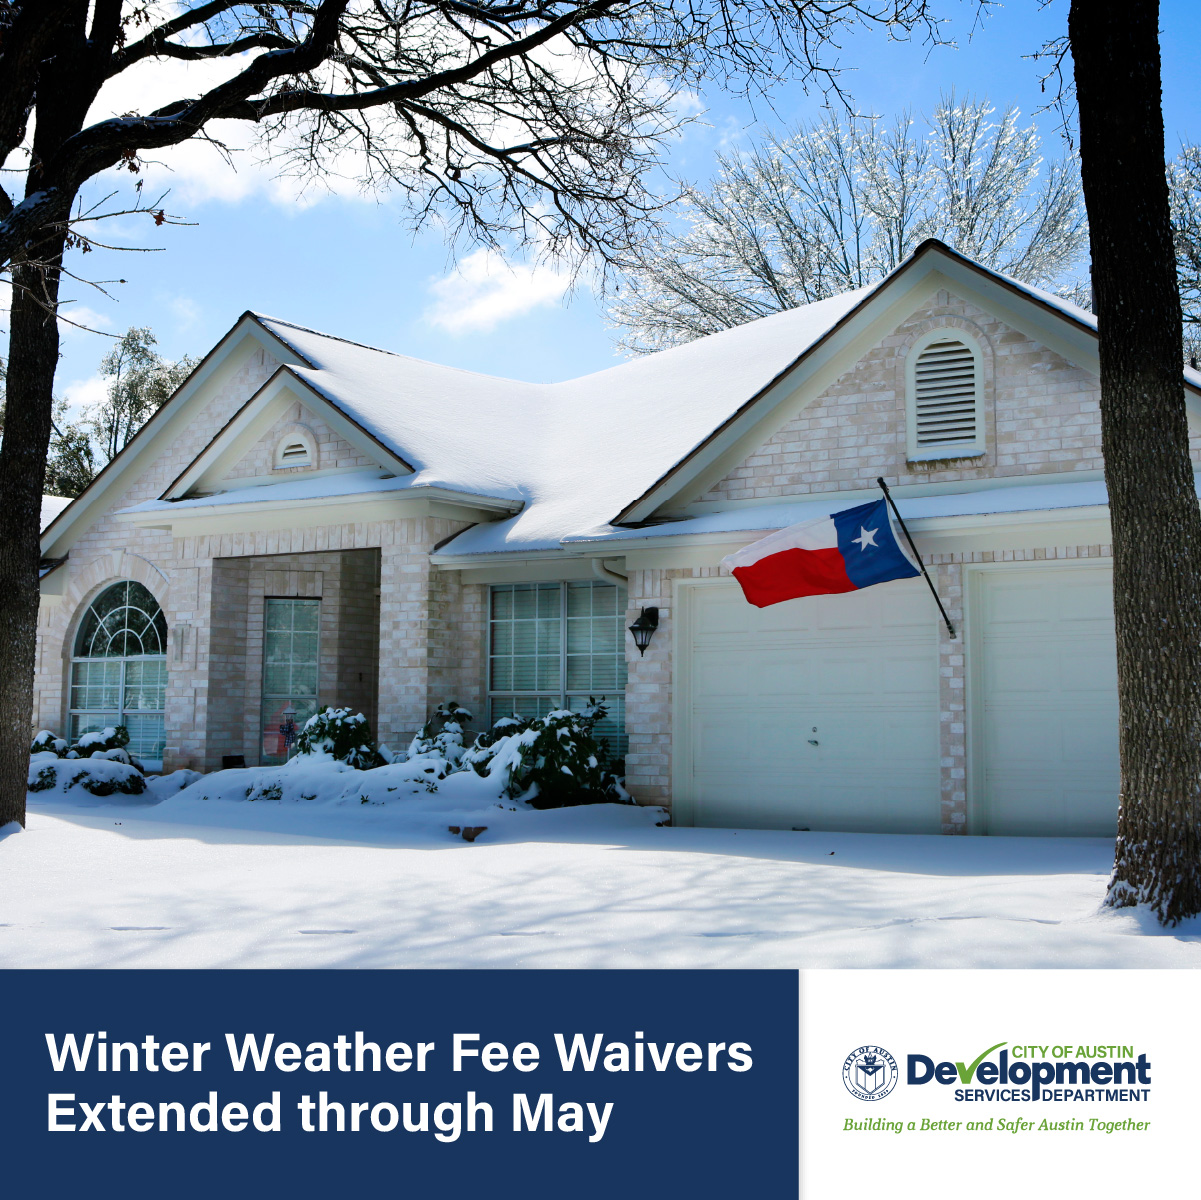 Winter Weather Fee Waivers Extended